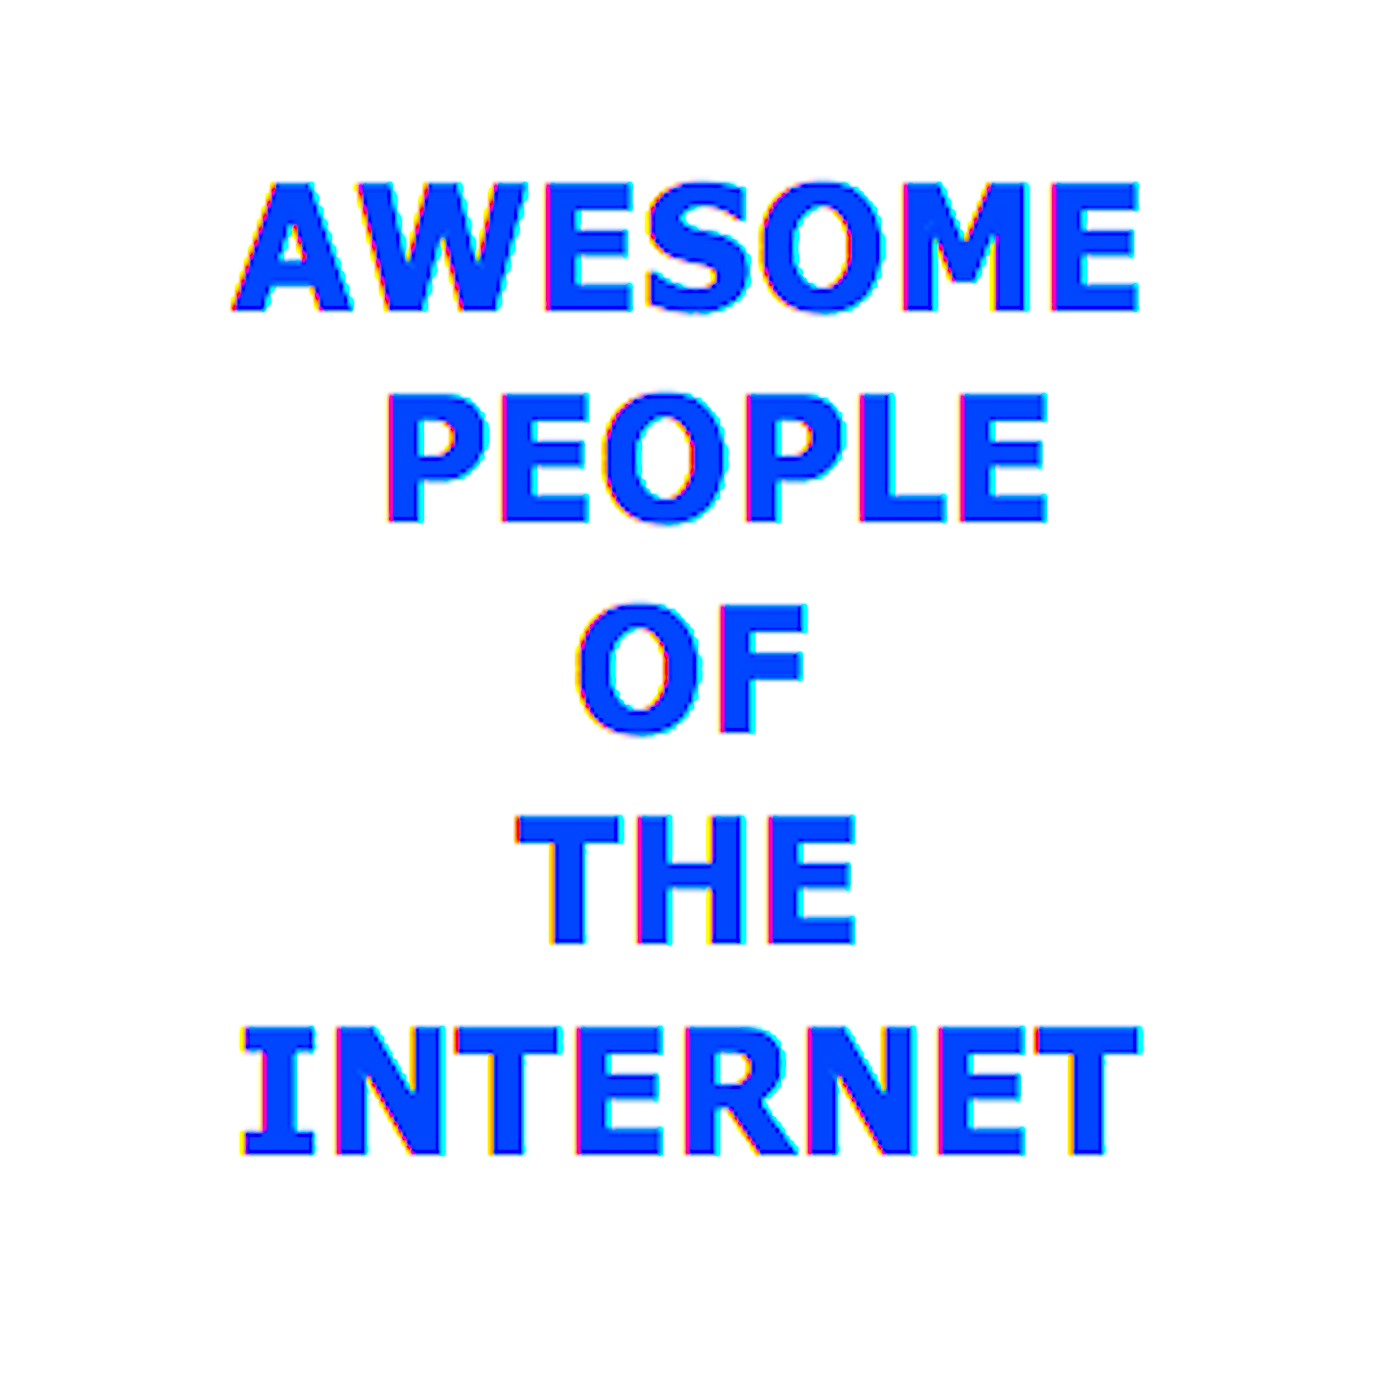 Awesome People of the Internet - Awesome People of the Internet